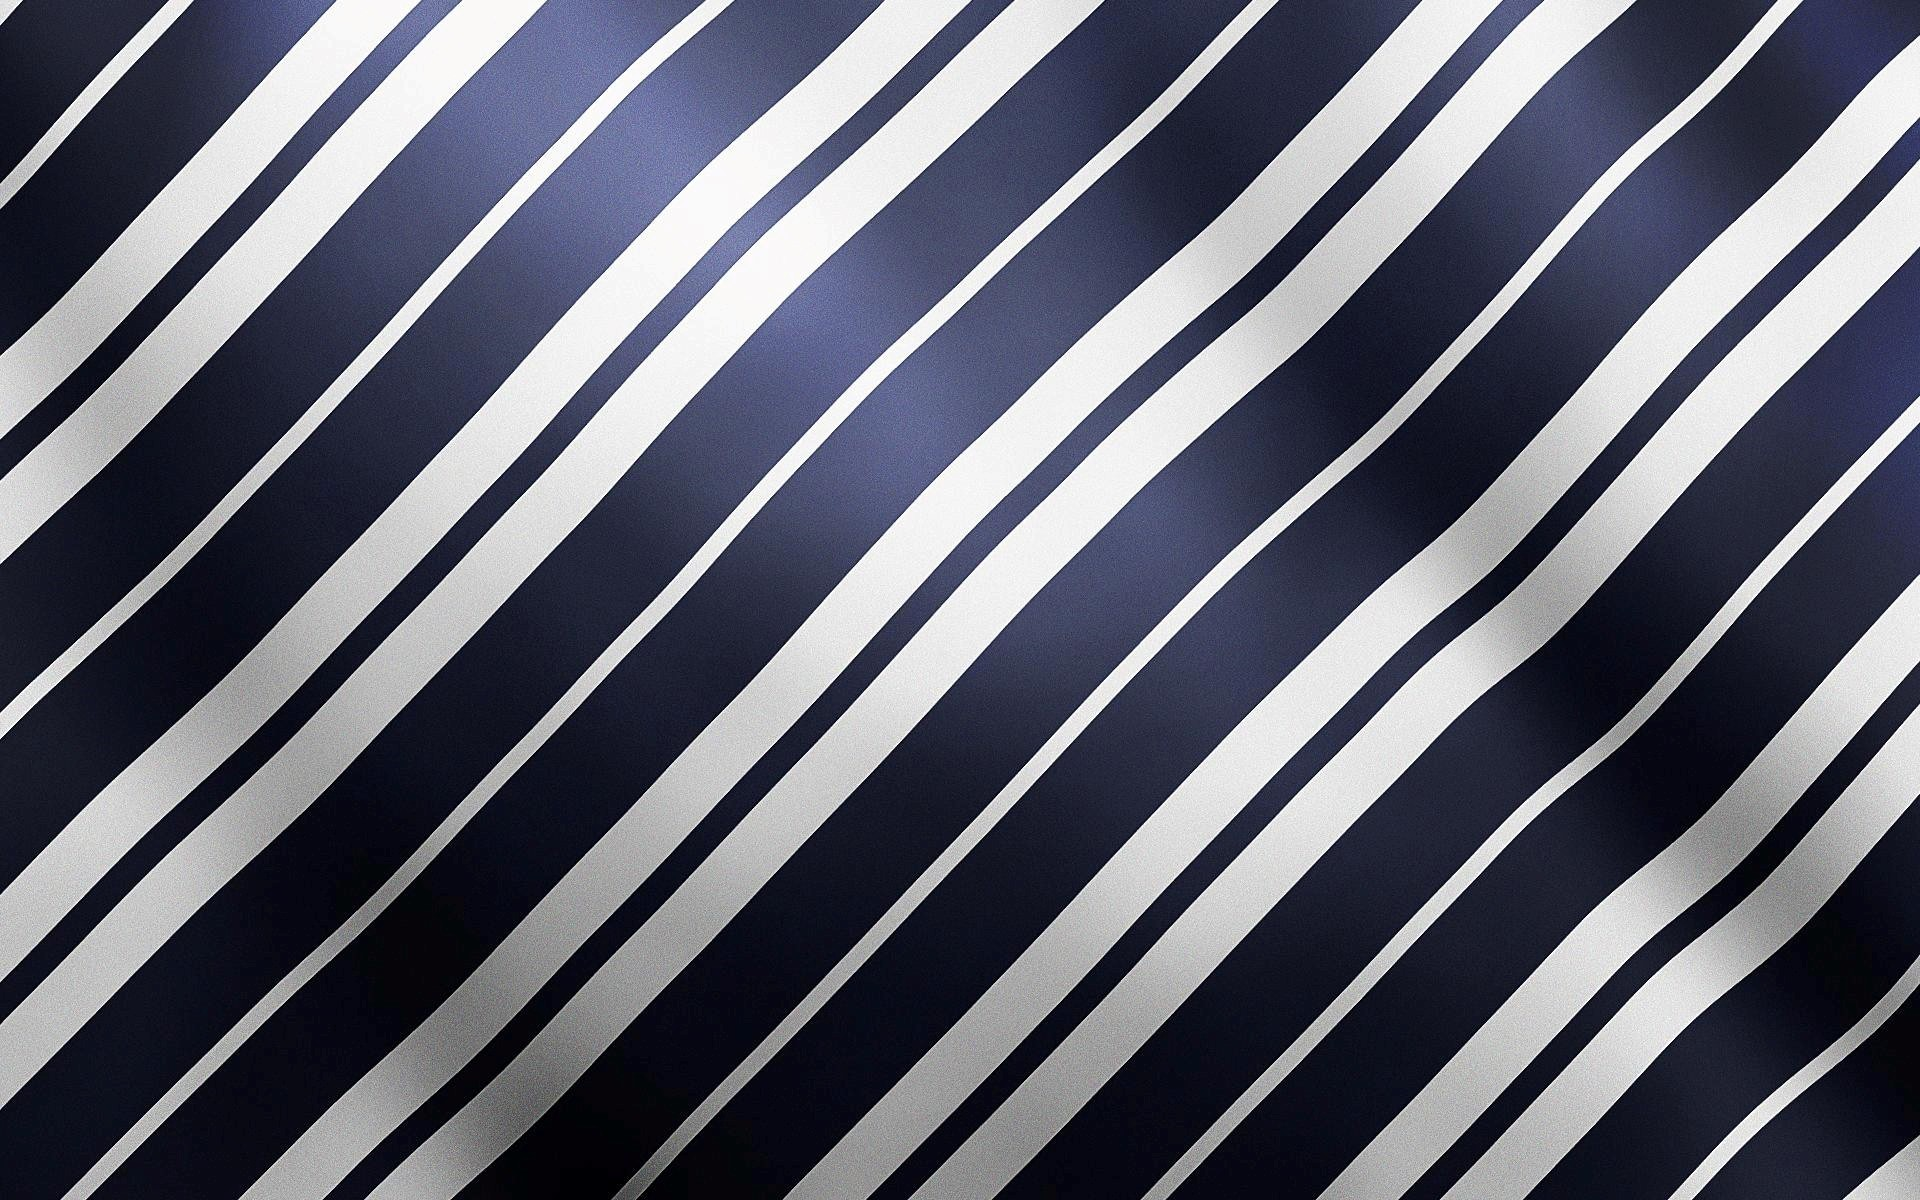 Black and White Line Abstract Background HD Wallpapers 1920x1200